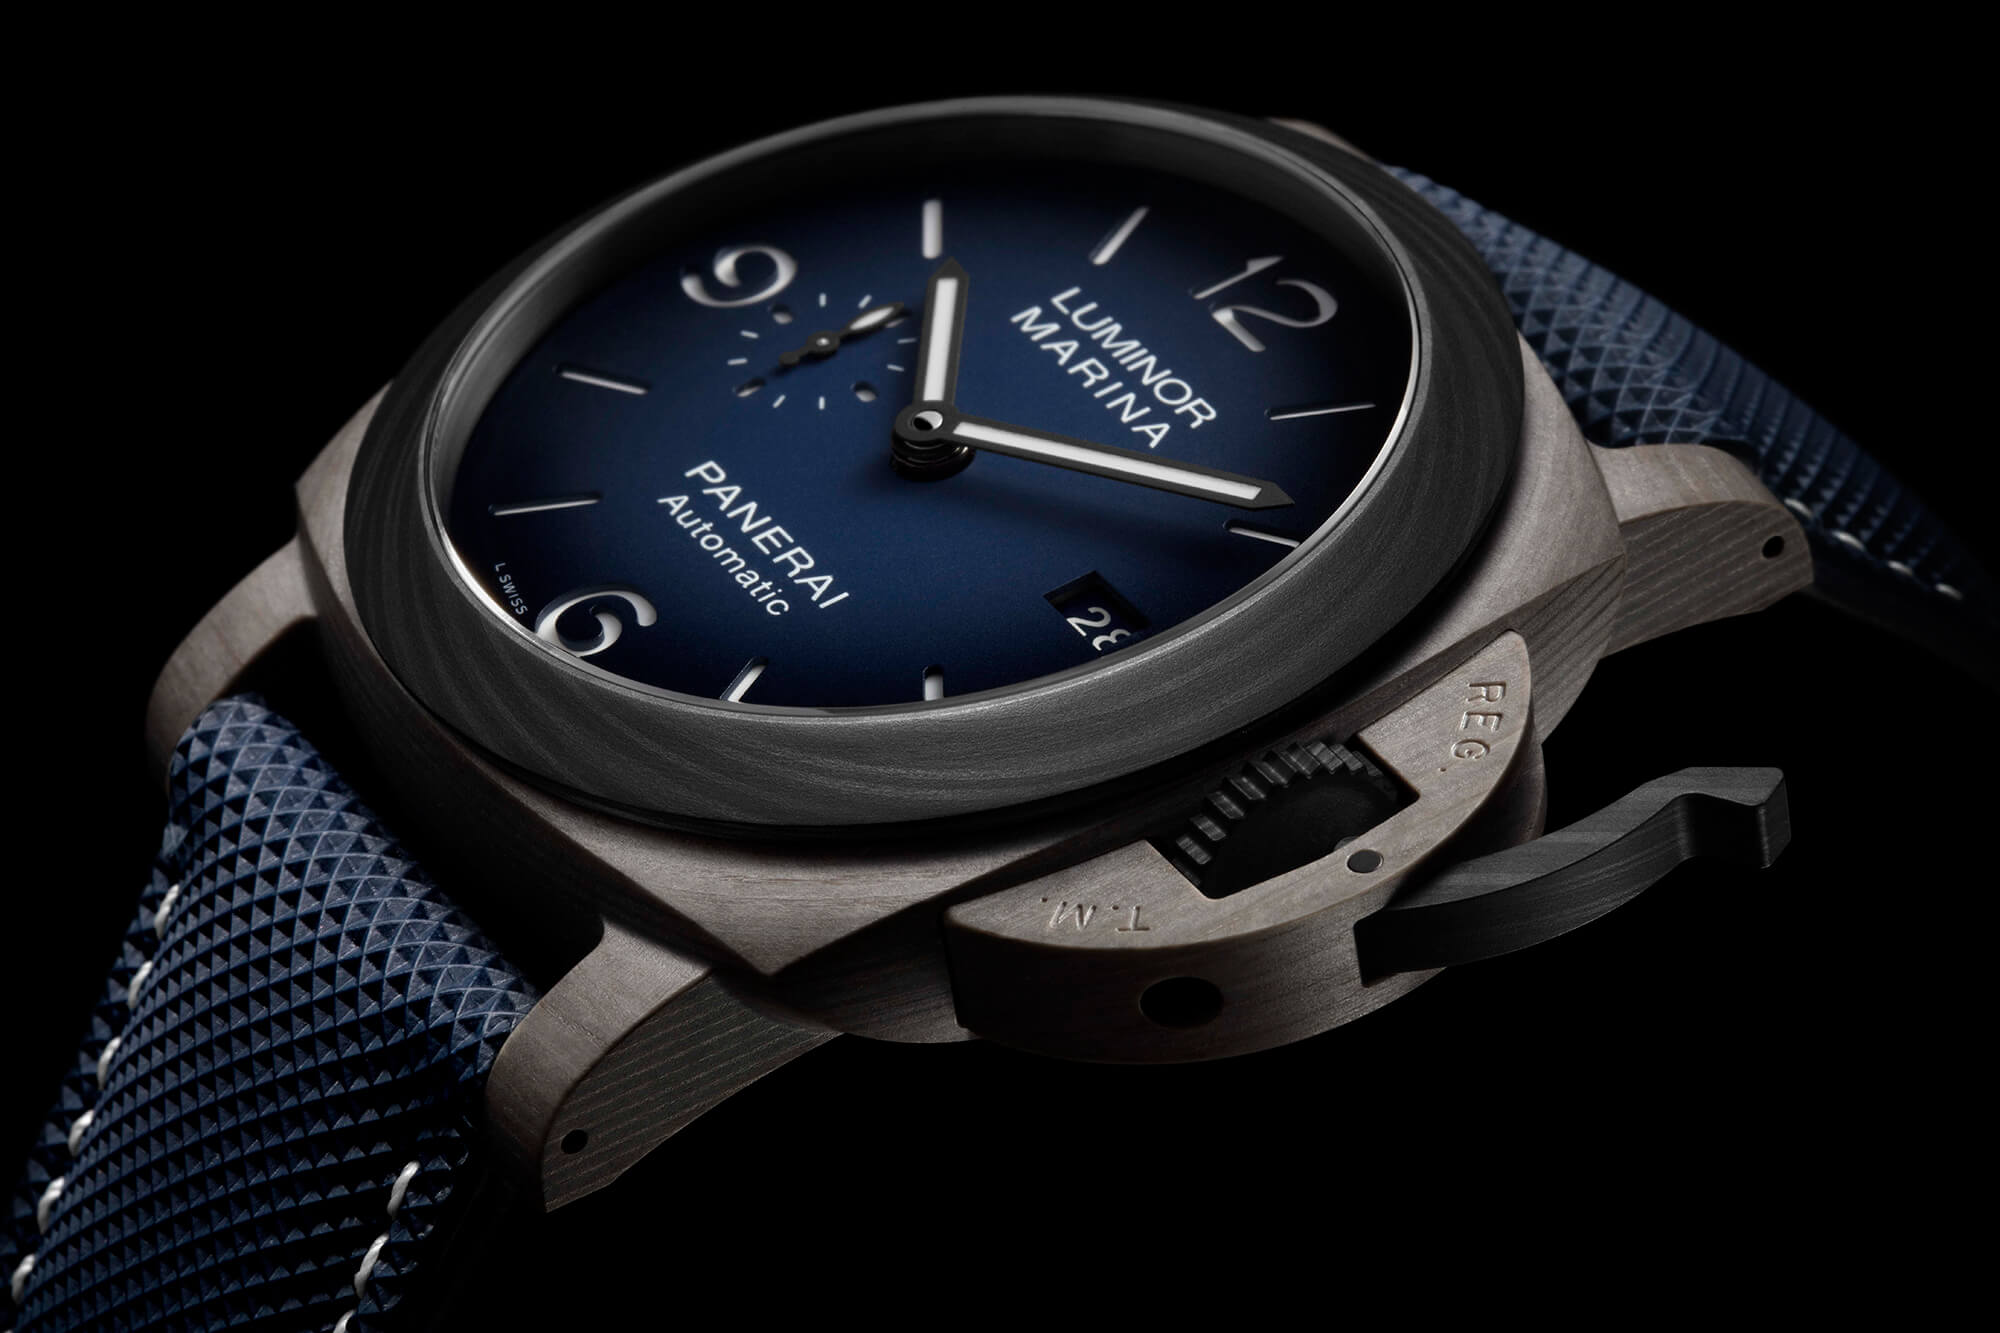 New Underwater Watch. PANERAI RELEASES IT NEW EDITION </p> 			</div> 		 			</div>  <div class=